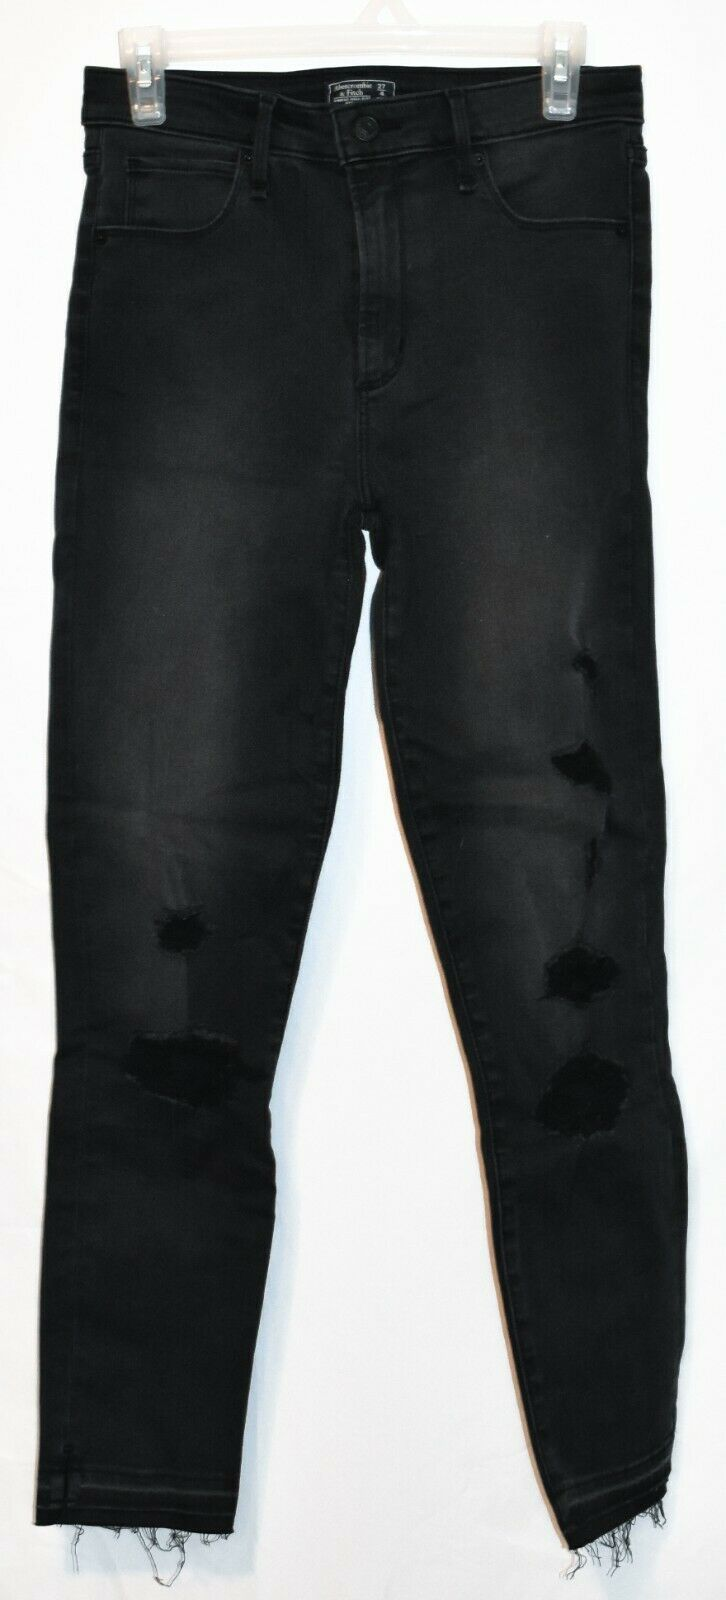 Abercrombie & Fitch Women's Black Distressed Simone High Rise Ankle Jeans 27 4L